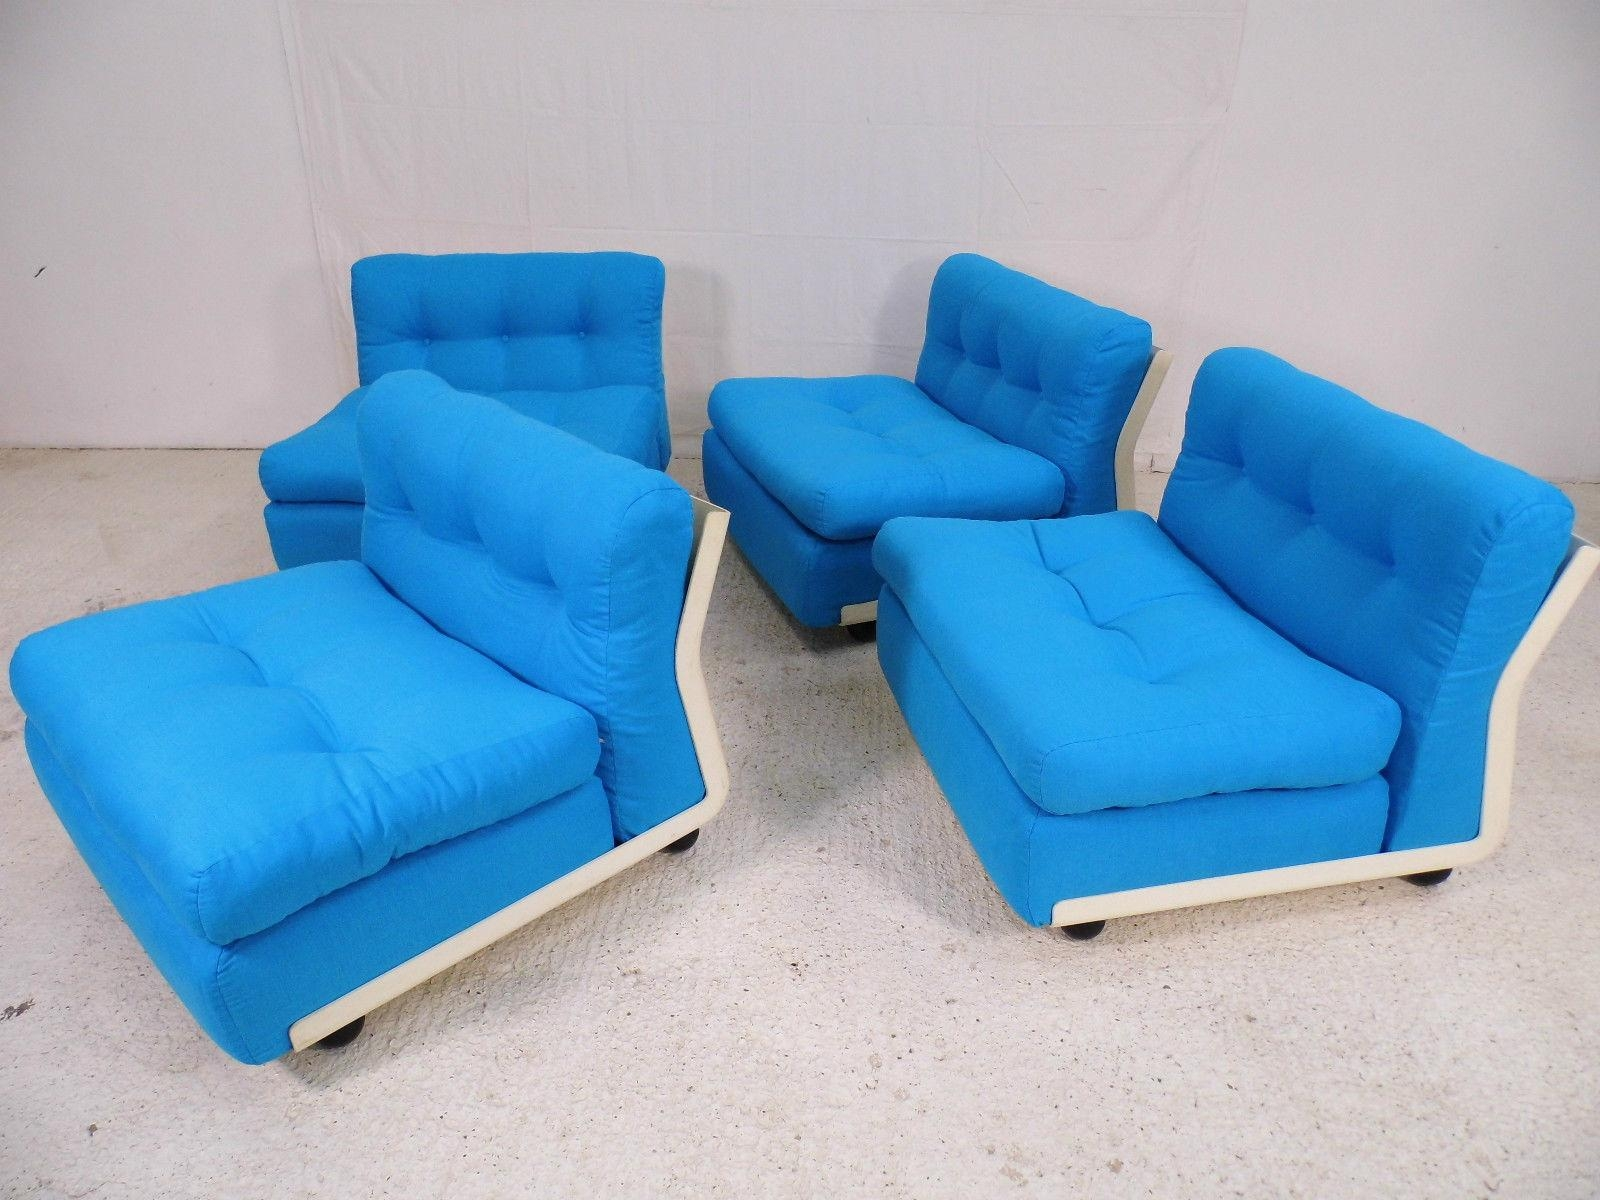 Modular Amanta 4 Seater Sofamario Bellini For C&b Italia, 1973 Inside Bellini Couches (View 14 of 20)